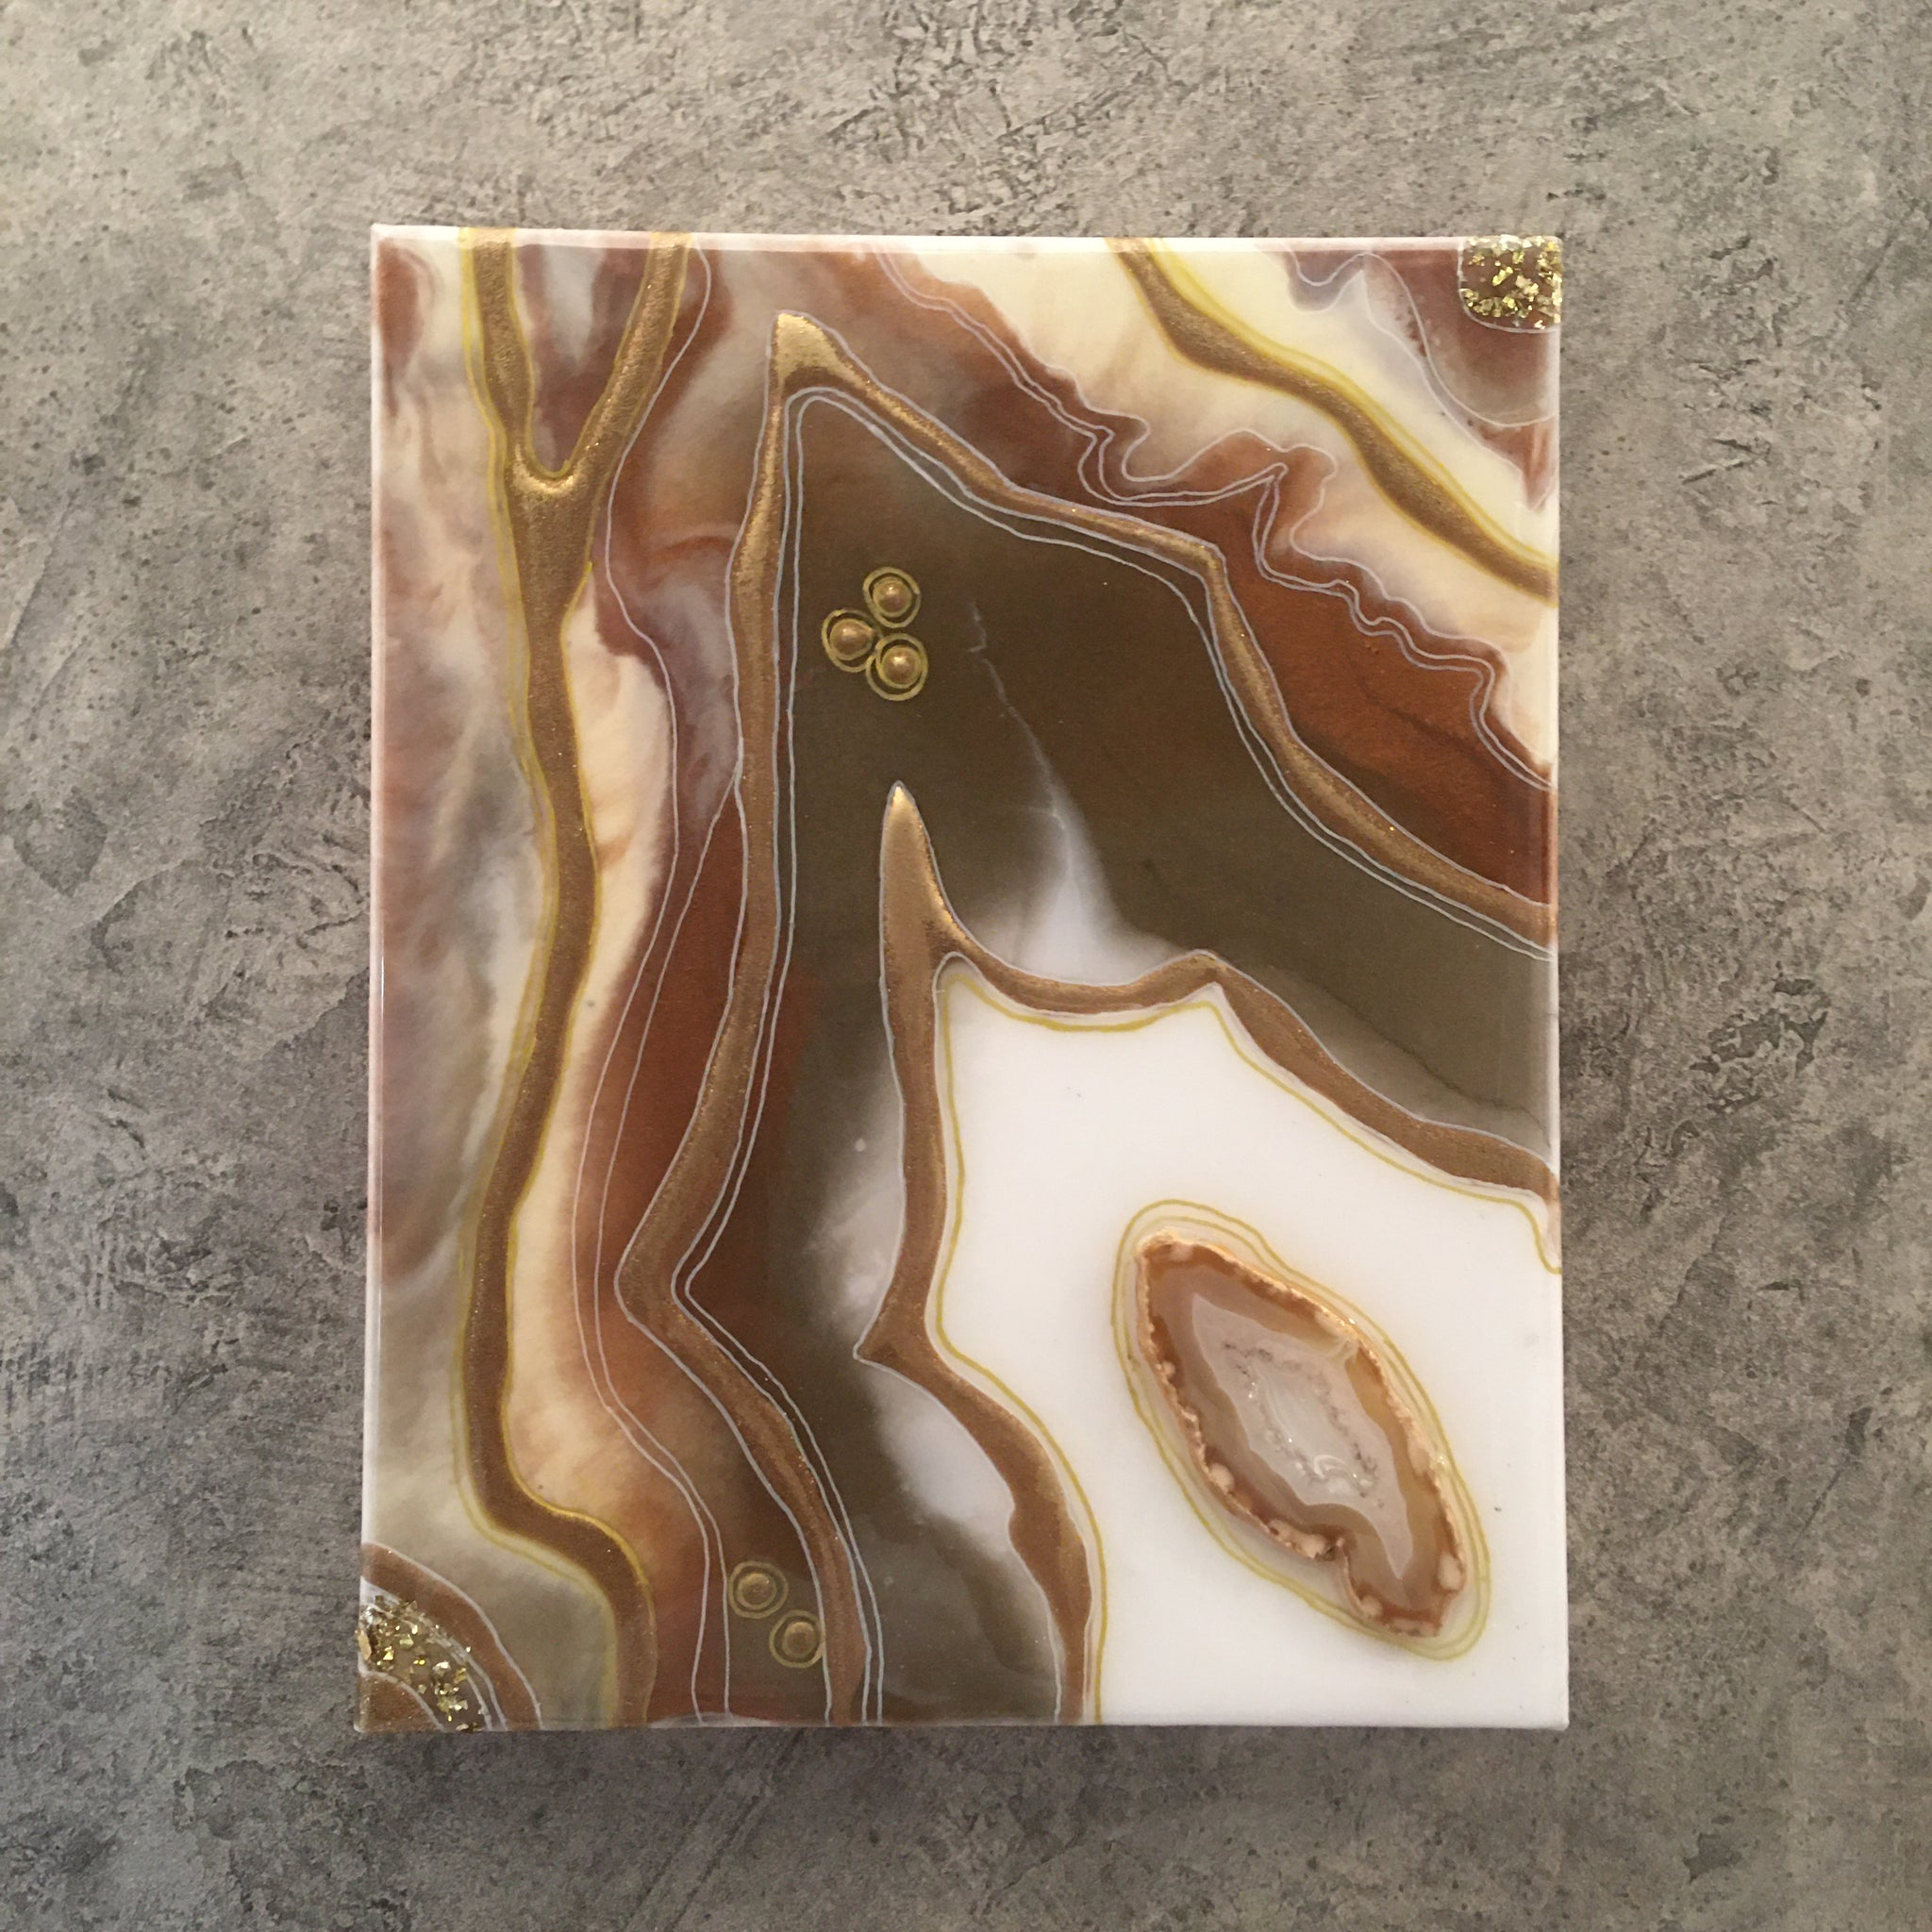 "Agate Artwork Brown Tones 10"" x 8"" With Authentic Agate Slice"